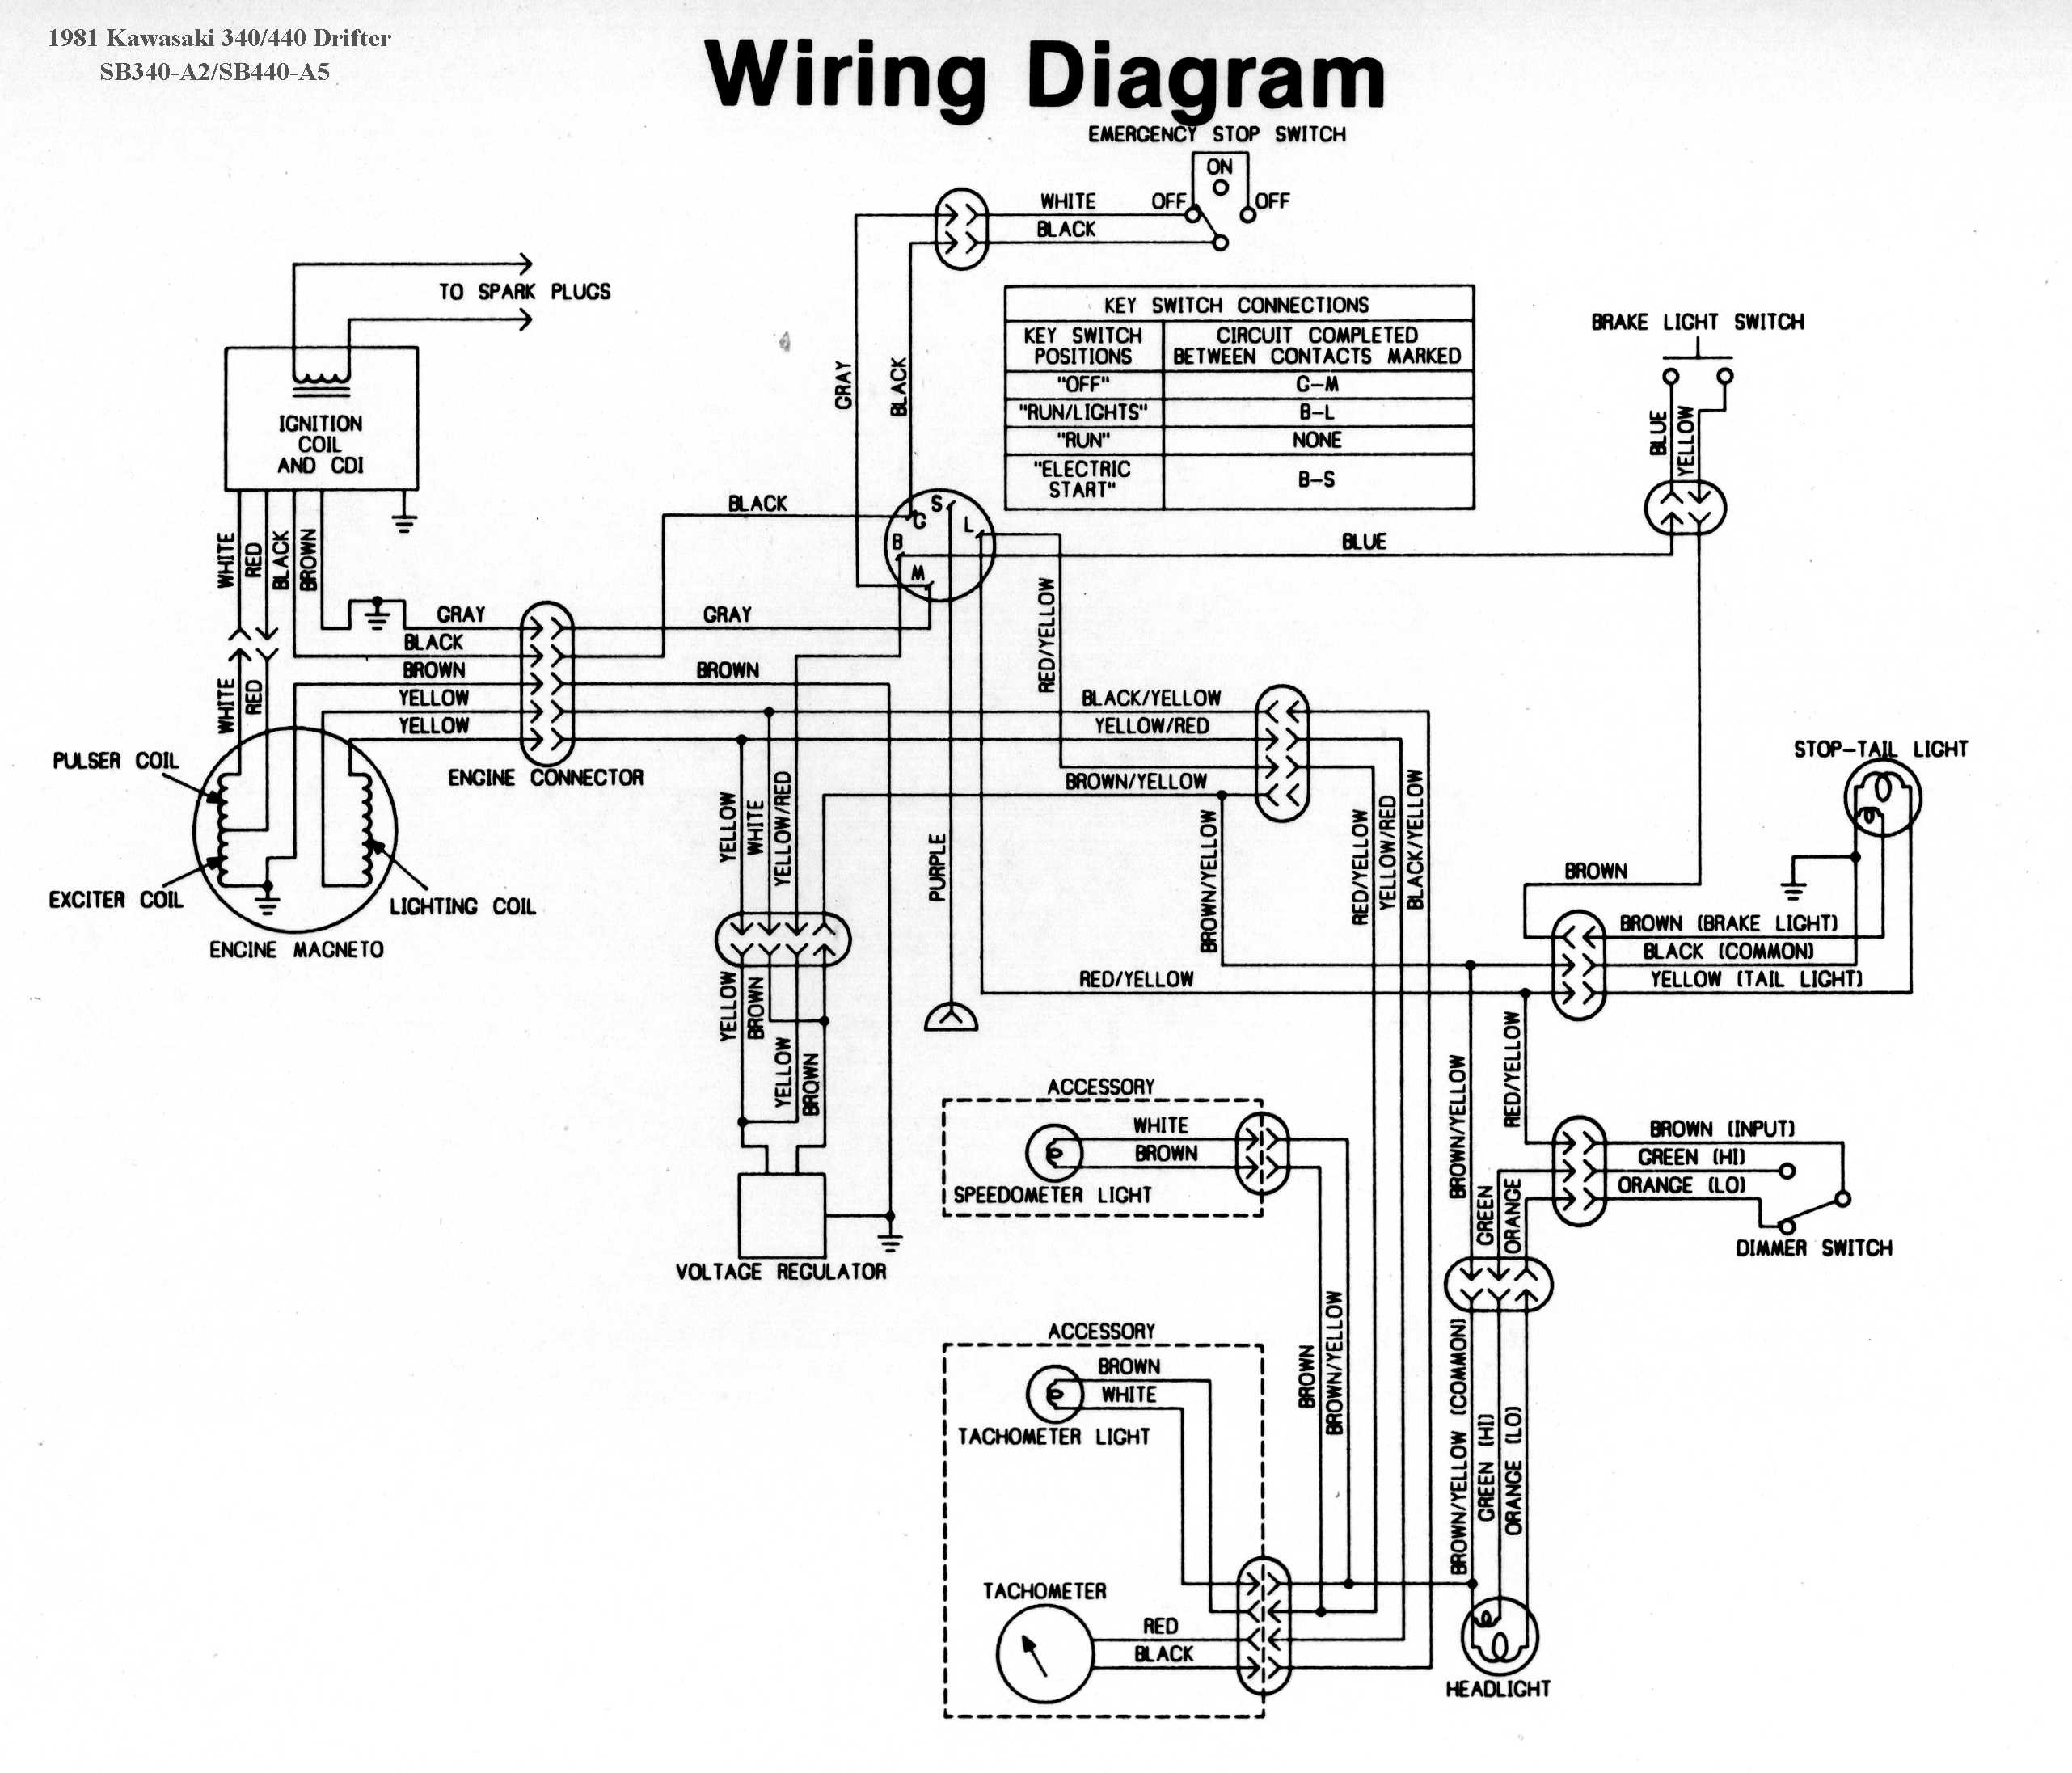 ... Engine Diagram Polaris Snowmobile Wiring Schematic Wiring Diagram.  Related Post